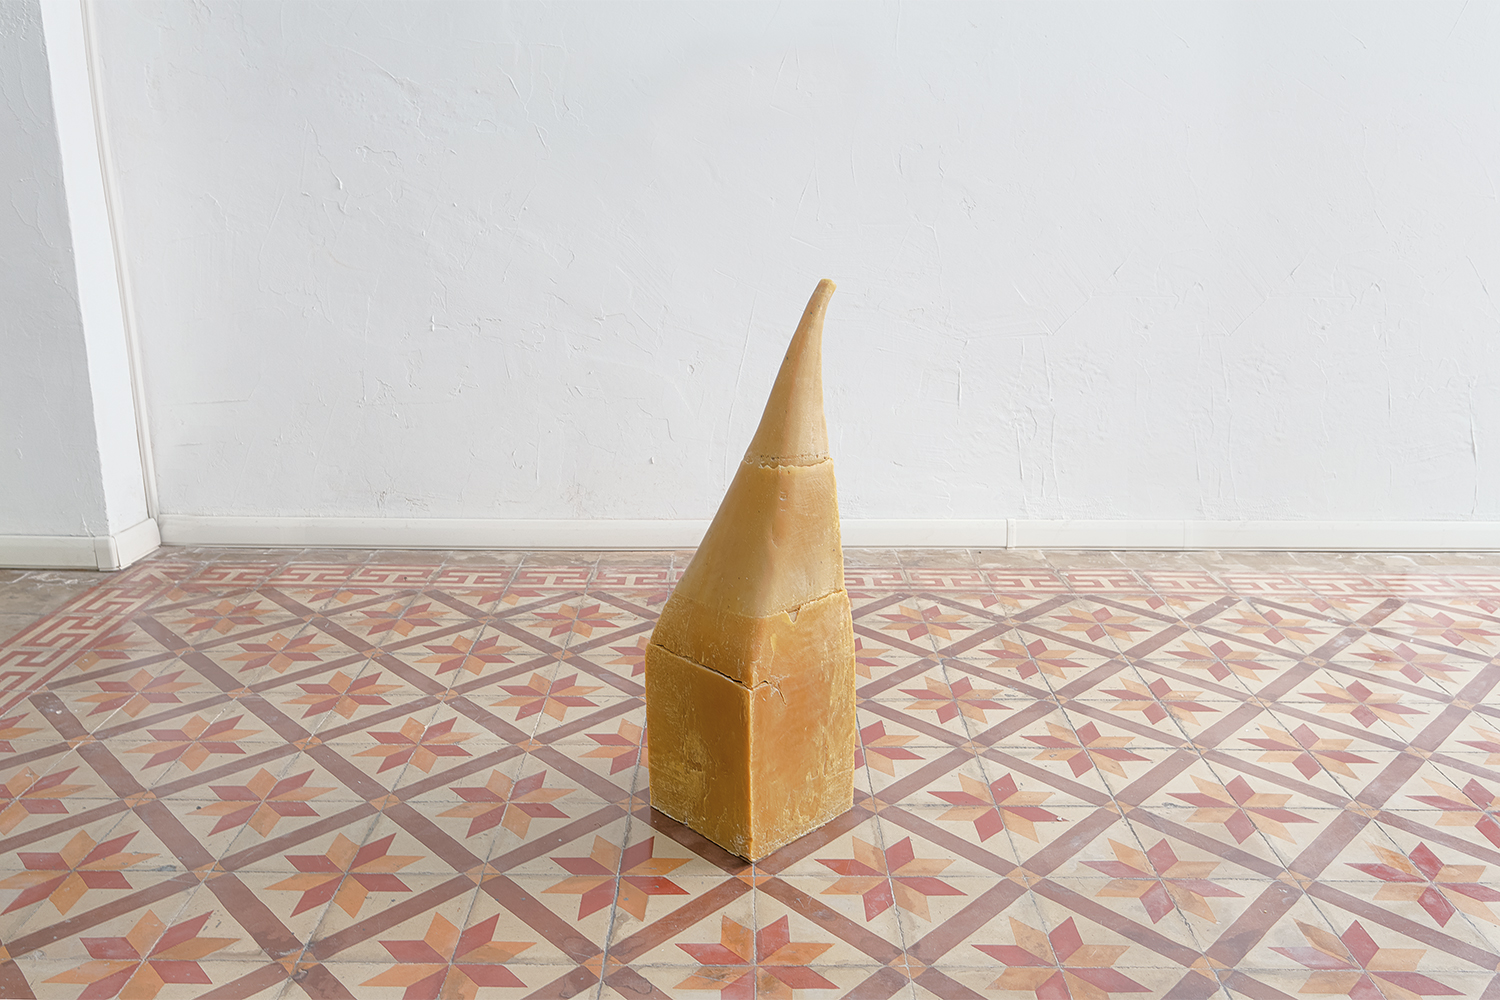 Augmented fragility , Untitled, raw beeswax, 80x20x20cm, 2015